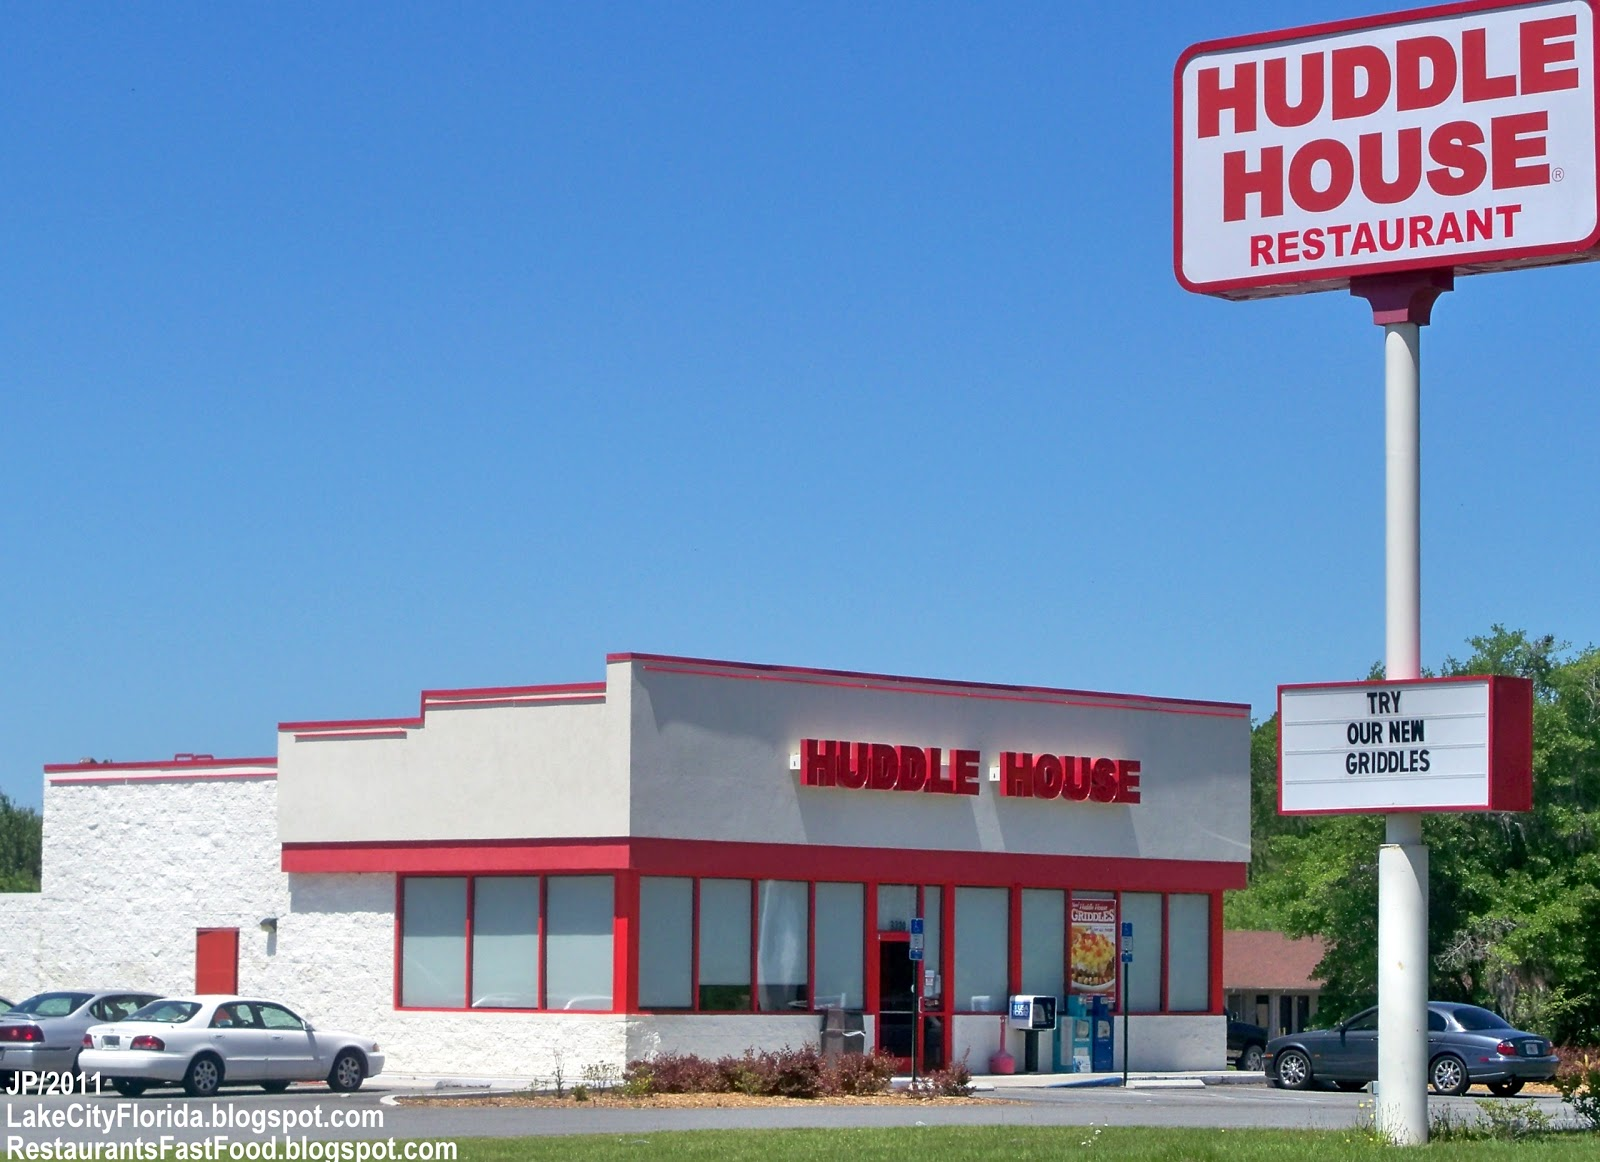 Huddle House Diner Restaurant Lake City Florida N Us Highway 441 Columbia County Fl